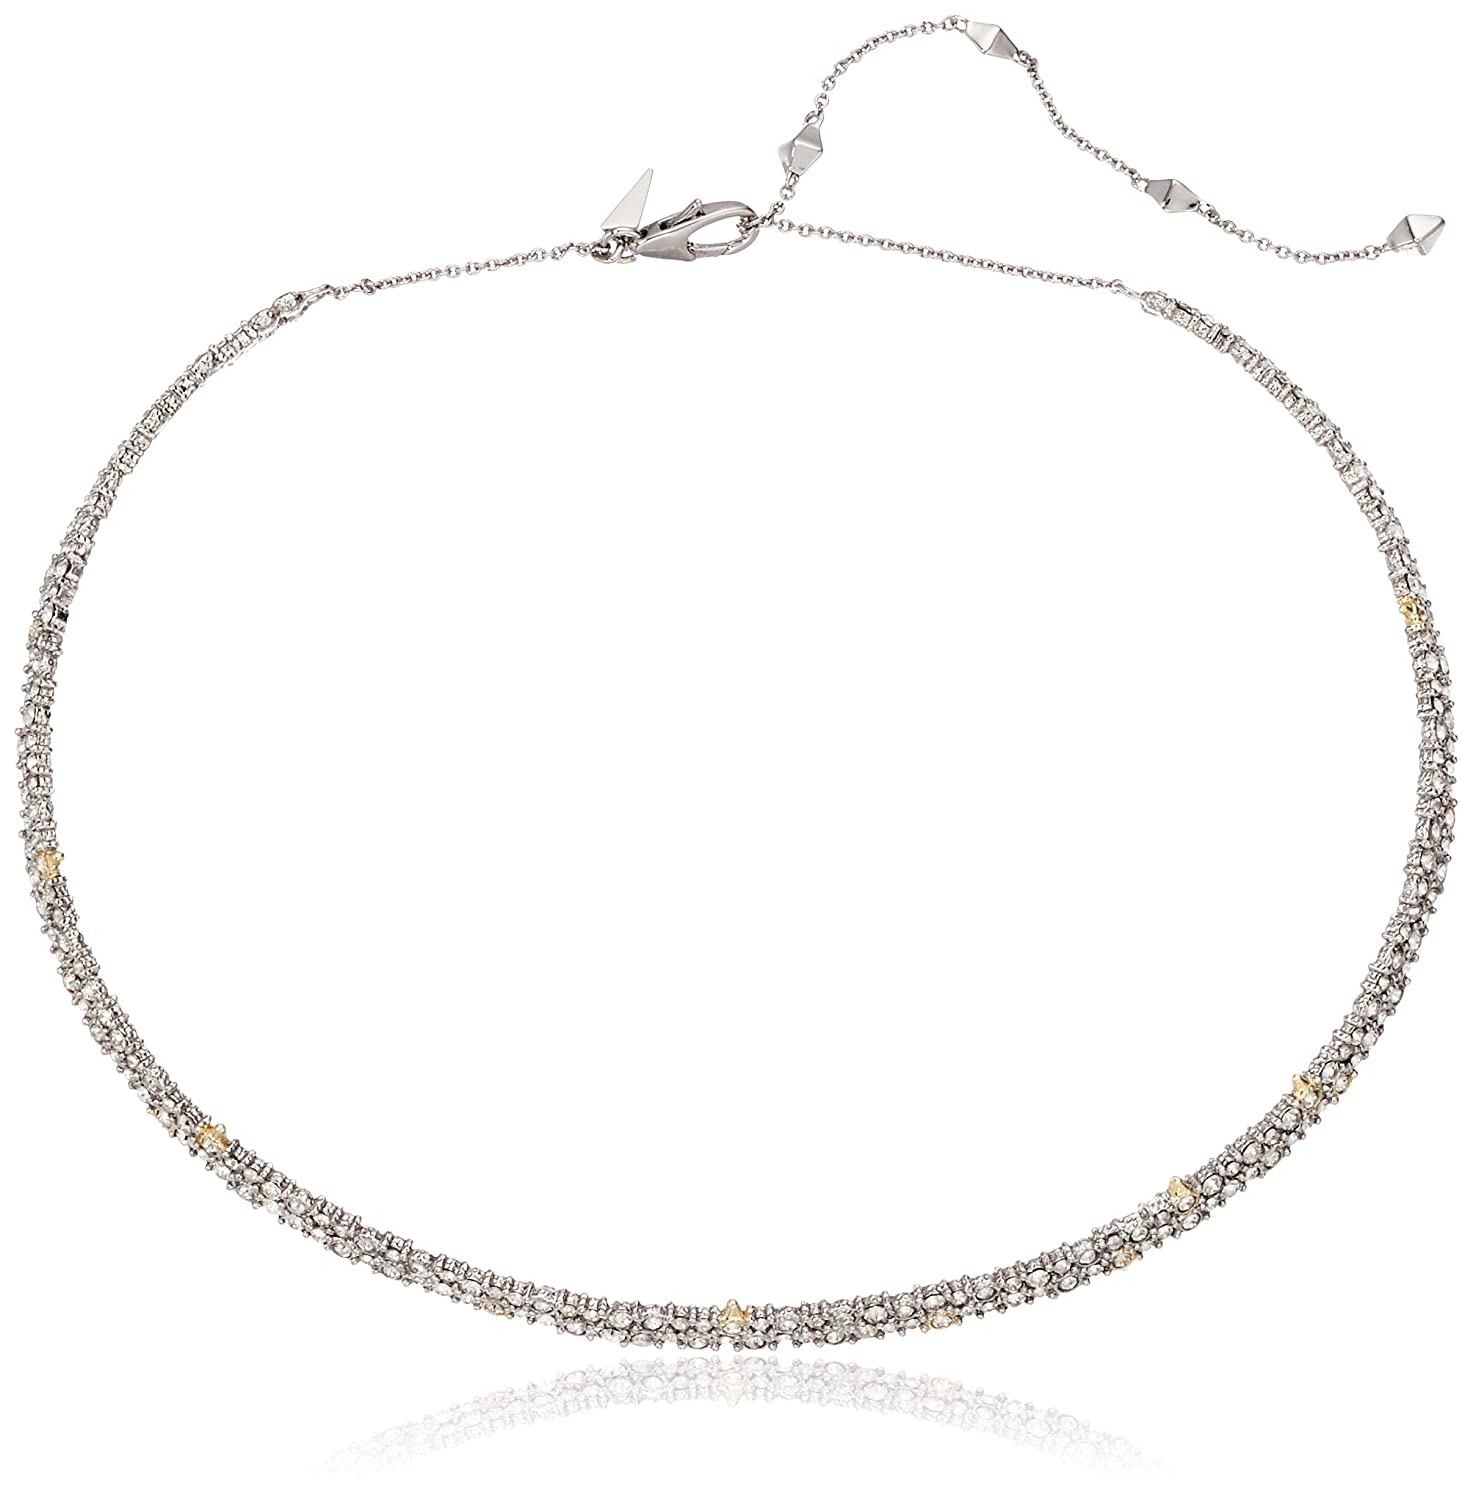 Alexis Bittar Crystal Encrusted Spike Accented Choker Necklace cAW5etae